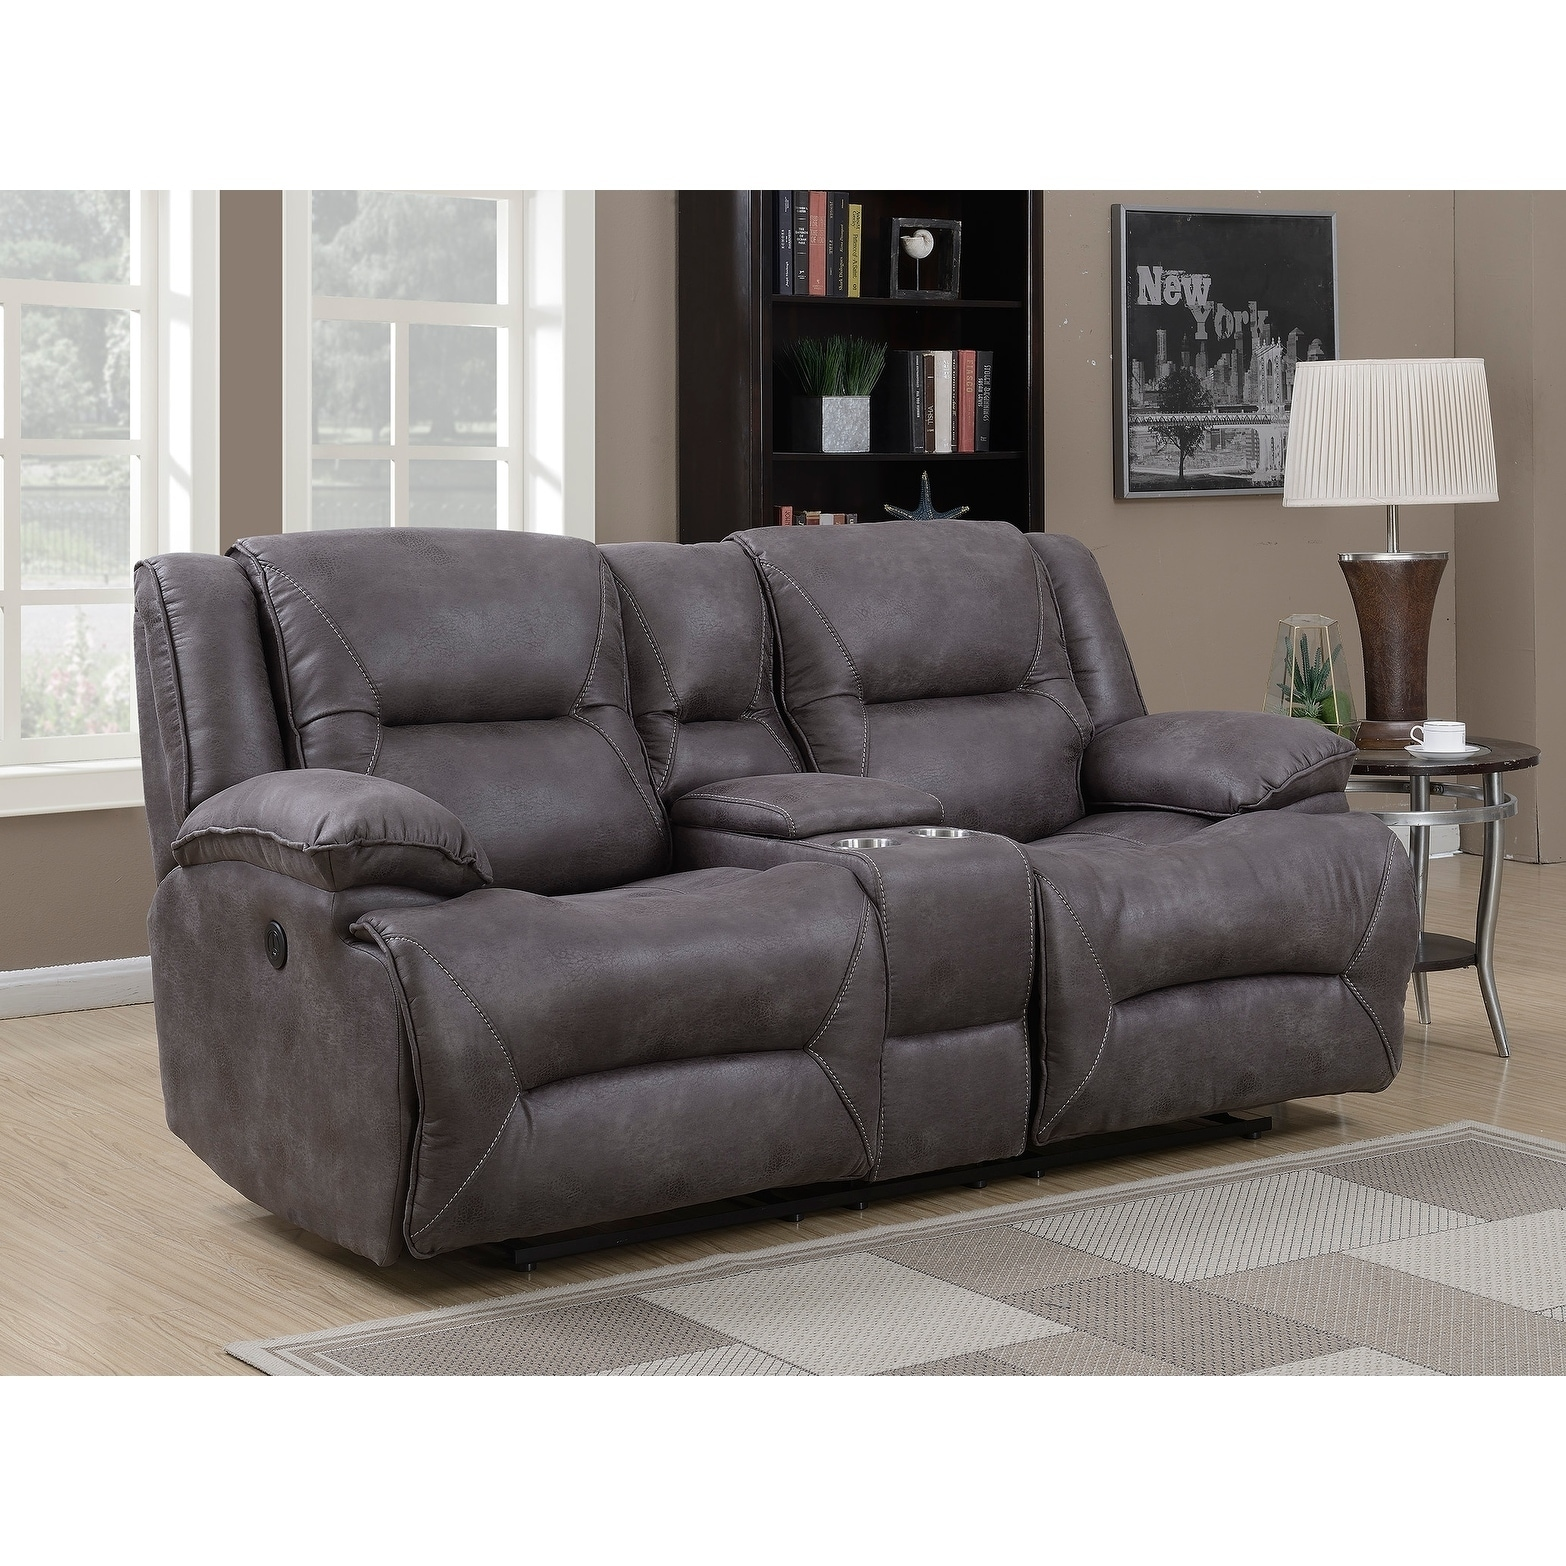 B751 Transitional Reclining Sectional With Storage Console: Dylan Dual Power Reclining Loveseat With Storage Console